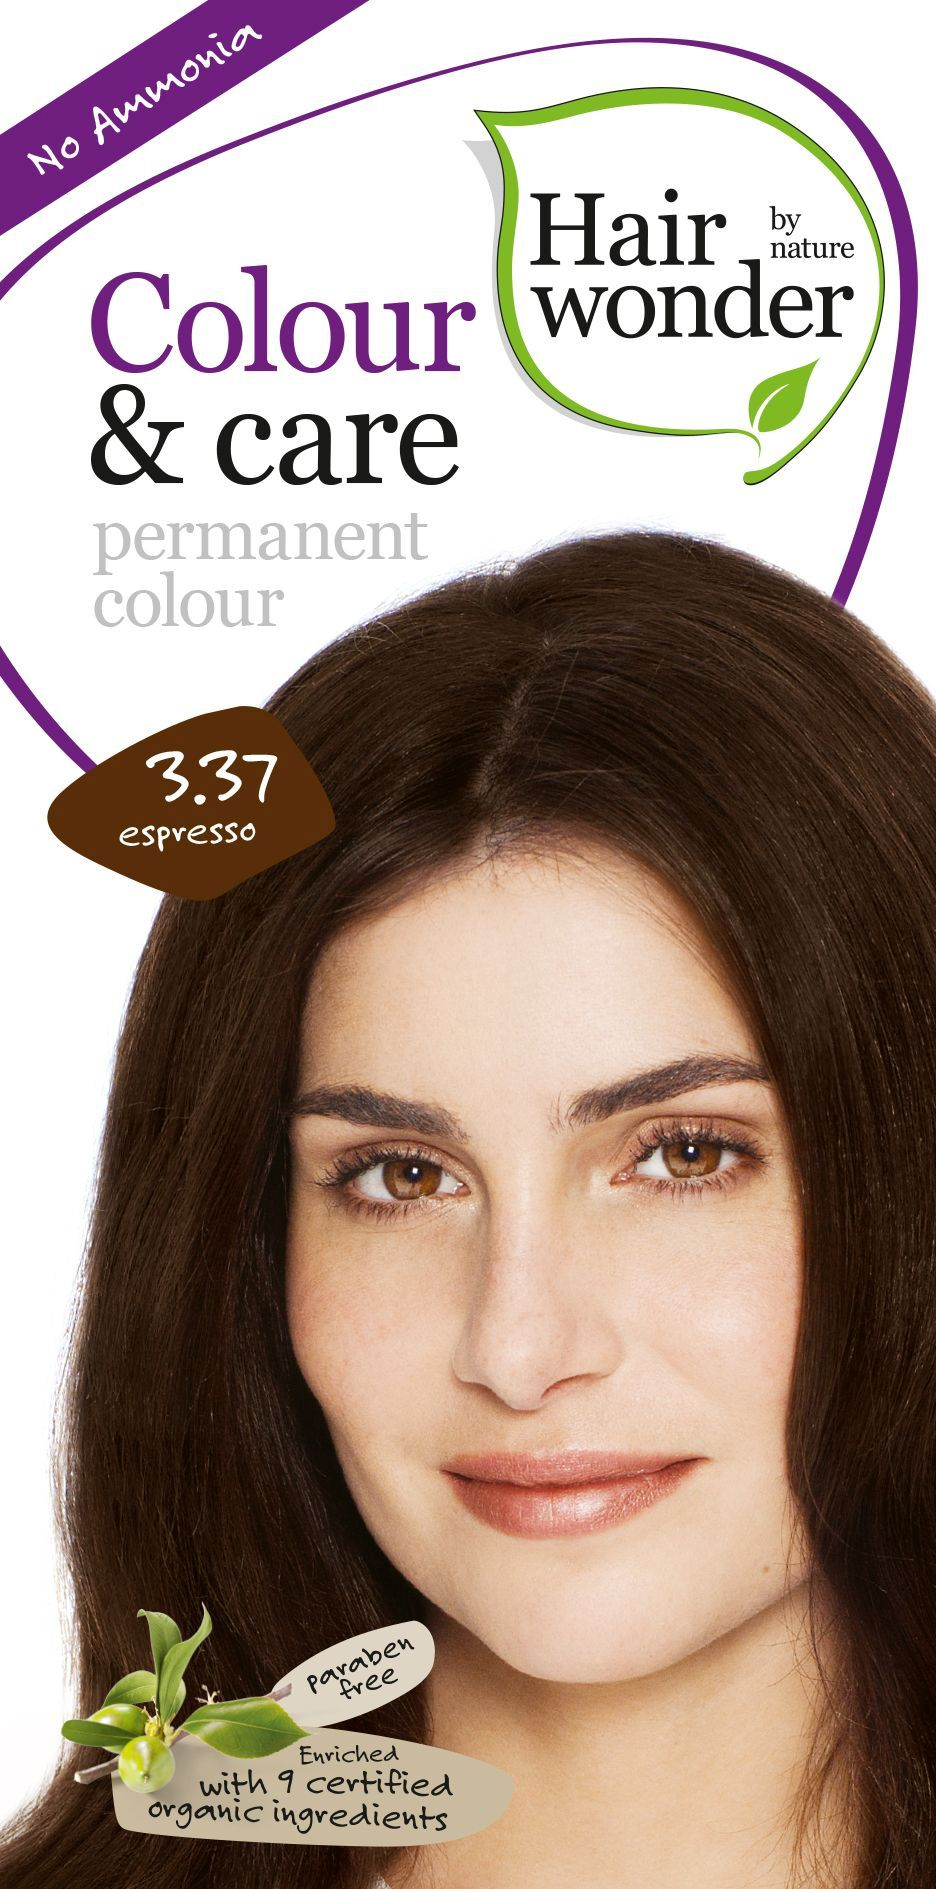 Hairwonder Colour & Care Espresso 3.37